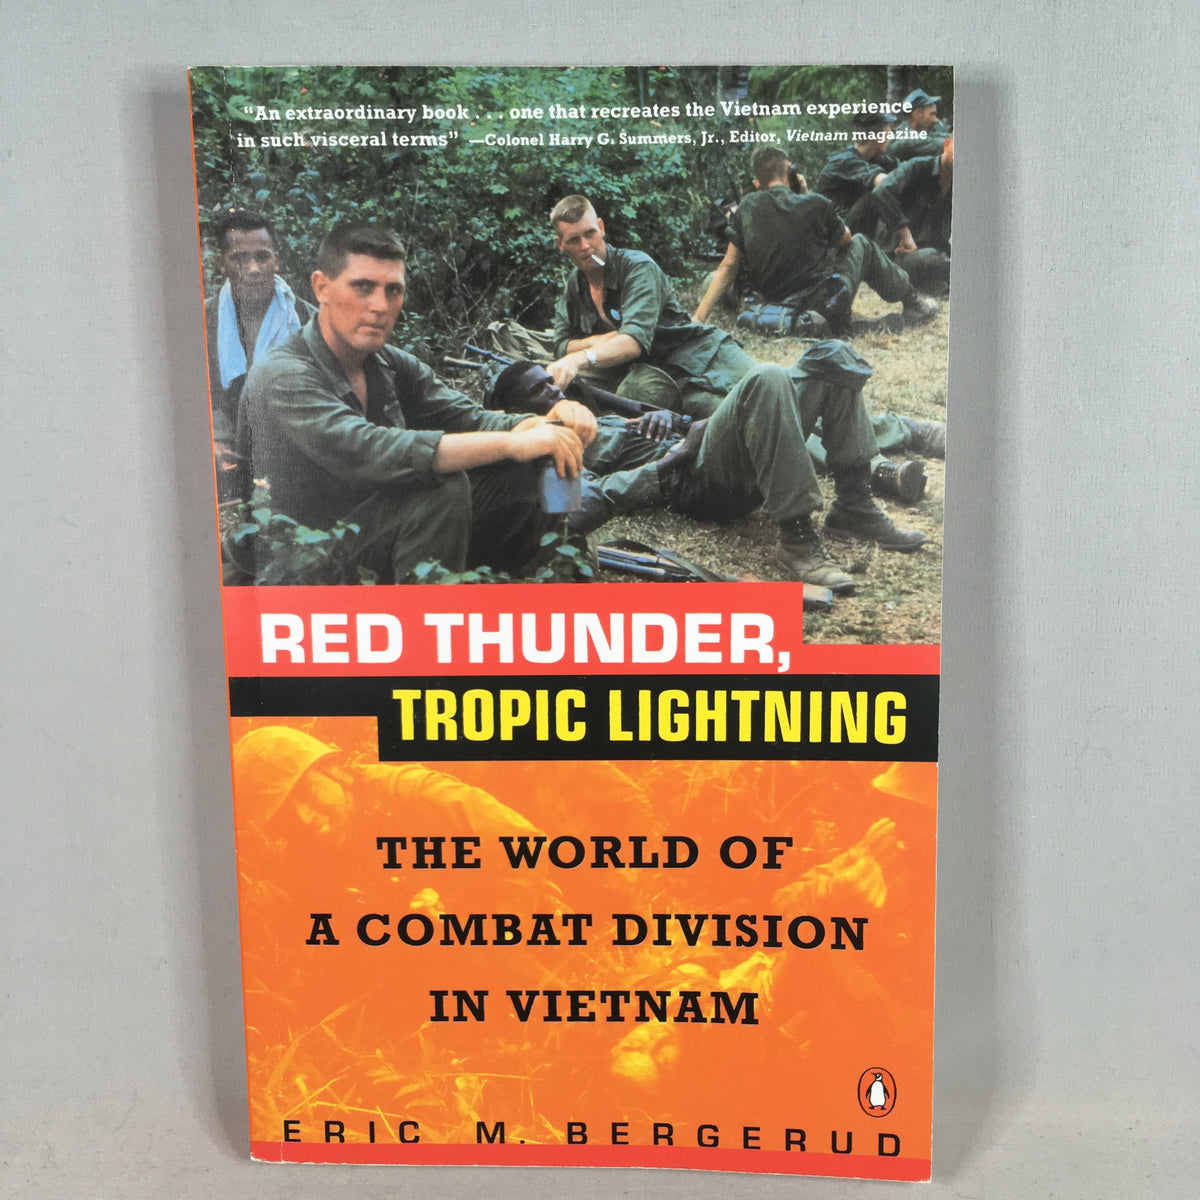 Red Thunder, Tropic lightning - The World of a Combat Division in Vietnam